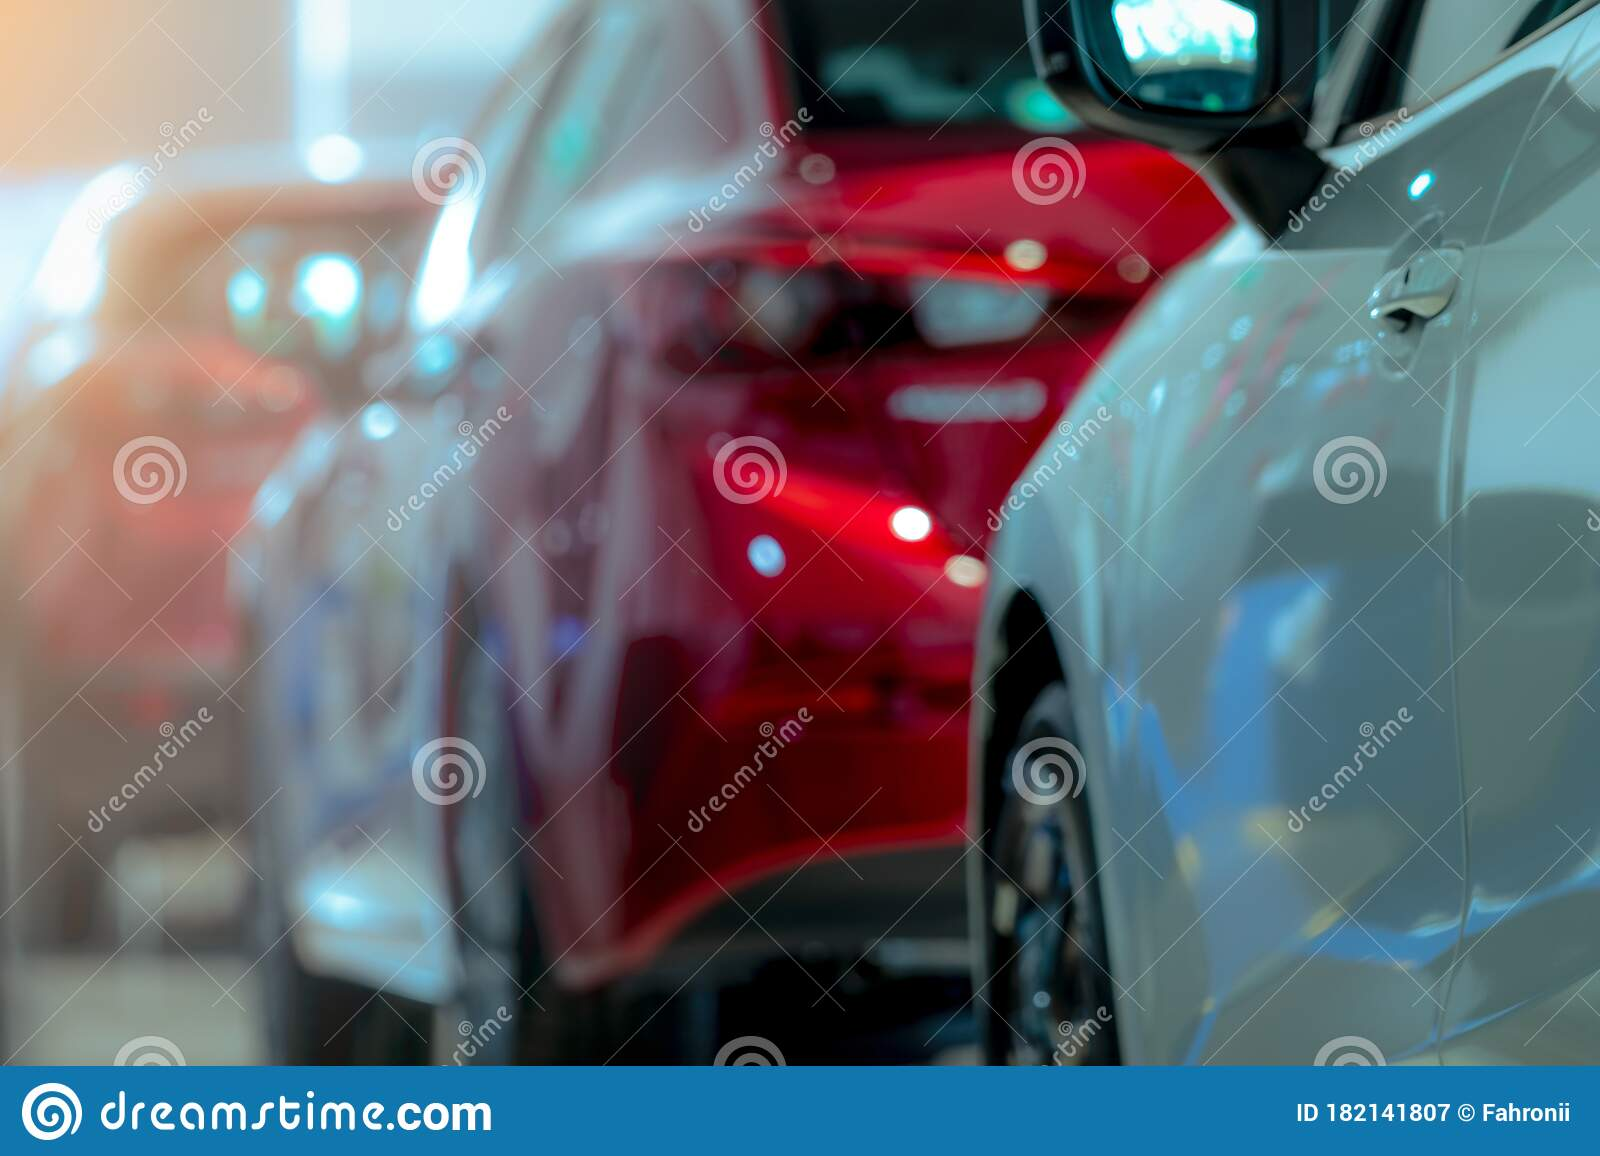 Blurred Of White And Red Luxury Car Parked In Modern Showroom Car Dealership Office Electric Car Business Concept Automobile Stock Image Image Of Rental Office 182141807